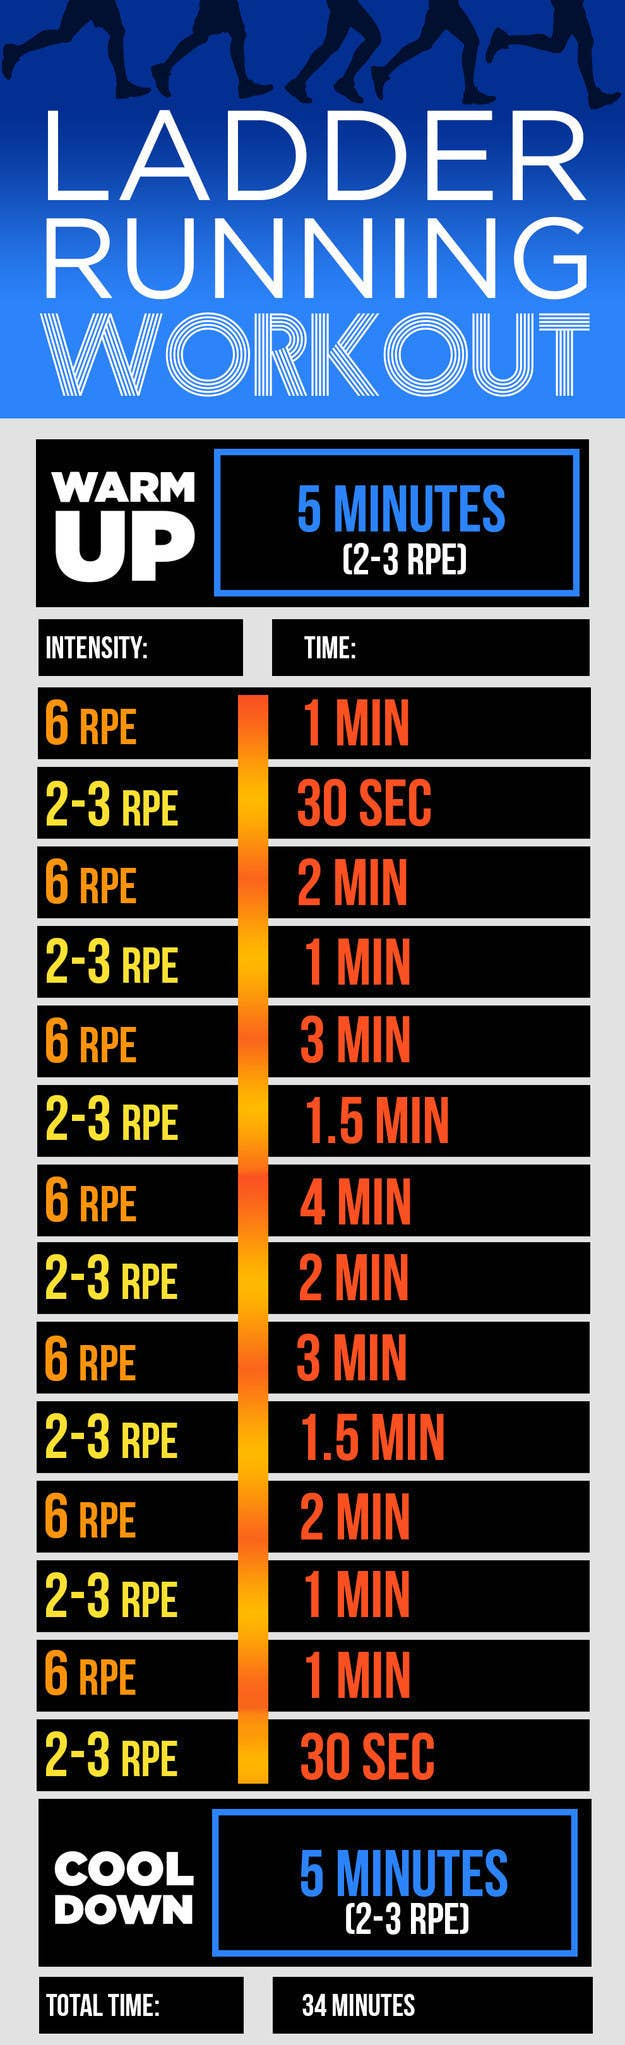 9 Running Workouts You Can Do In 30 Minutes Or Less Hour Circuit Tabata Hiit Pinterest These Versatile Are A Great Way To Mix Things Up And Keep Your From